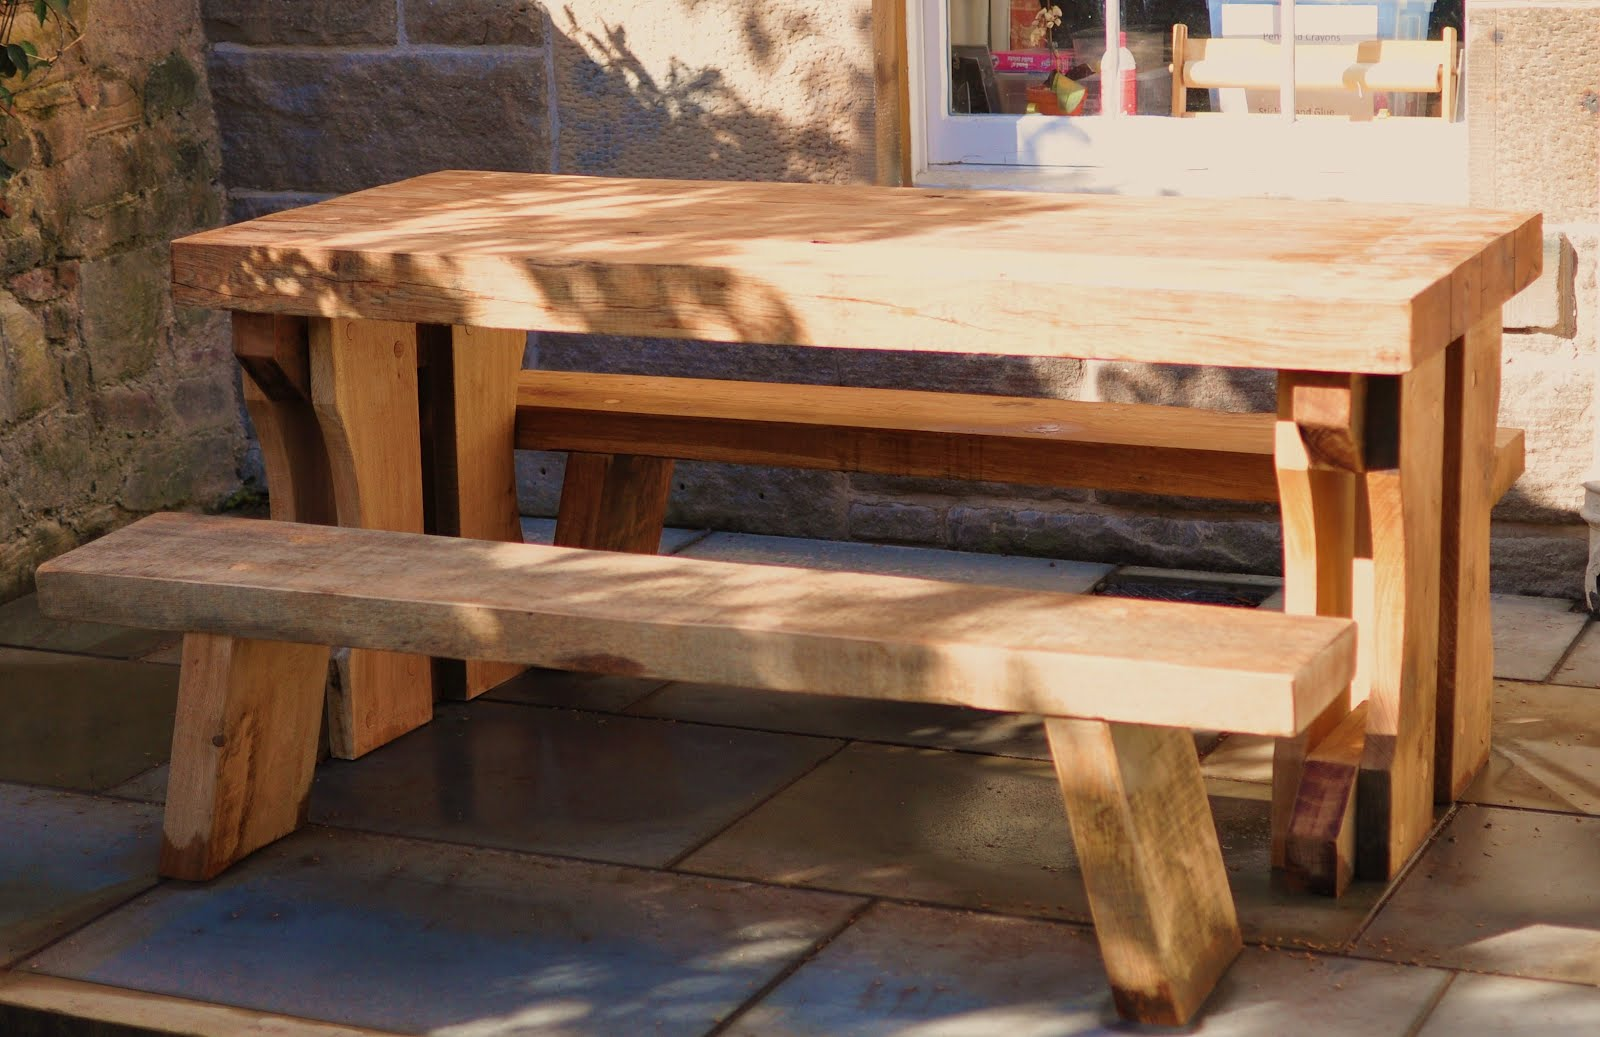 Garden Furniture Made From Scaffolding Planks garden furniture made from scaffolding planks and stairs old